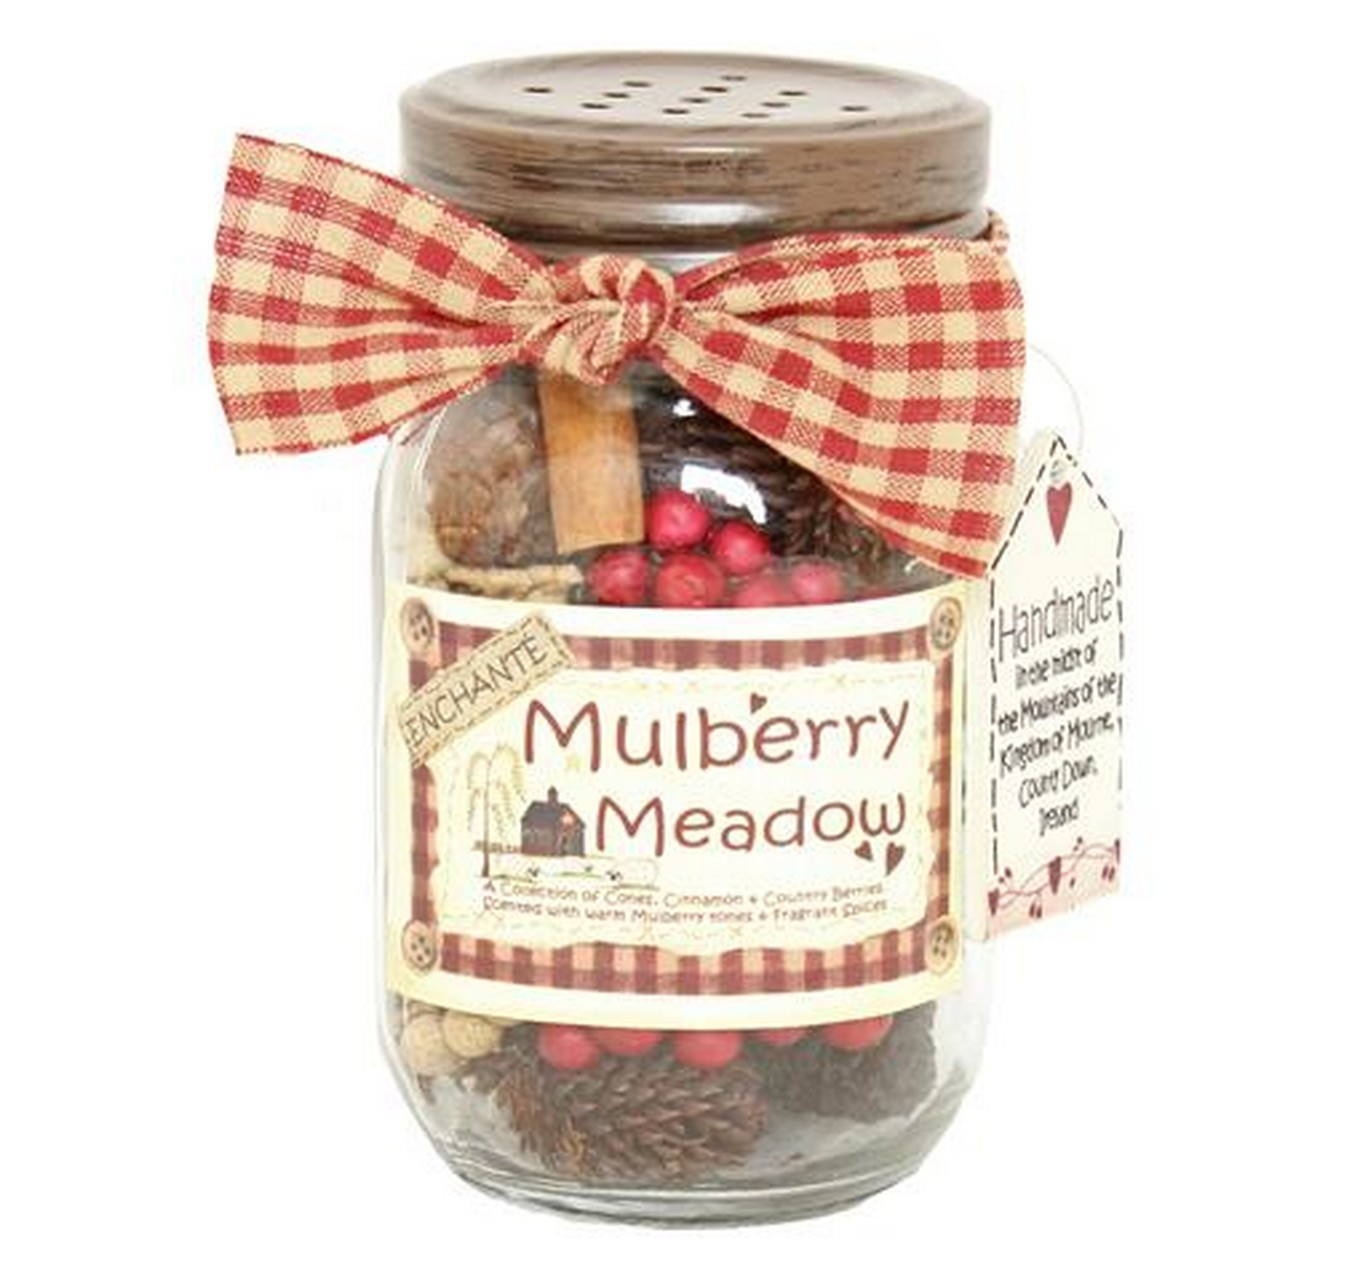 Mulberry Meadow Jar